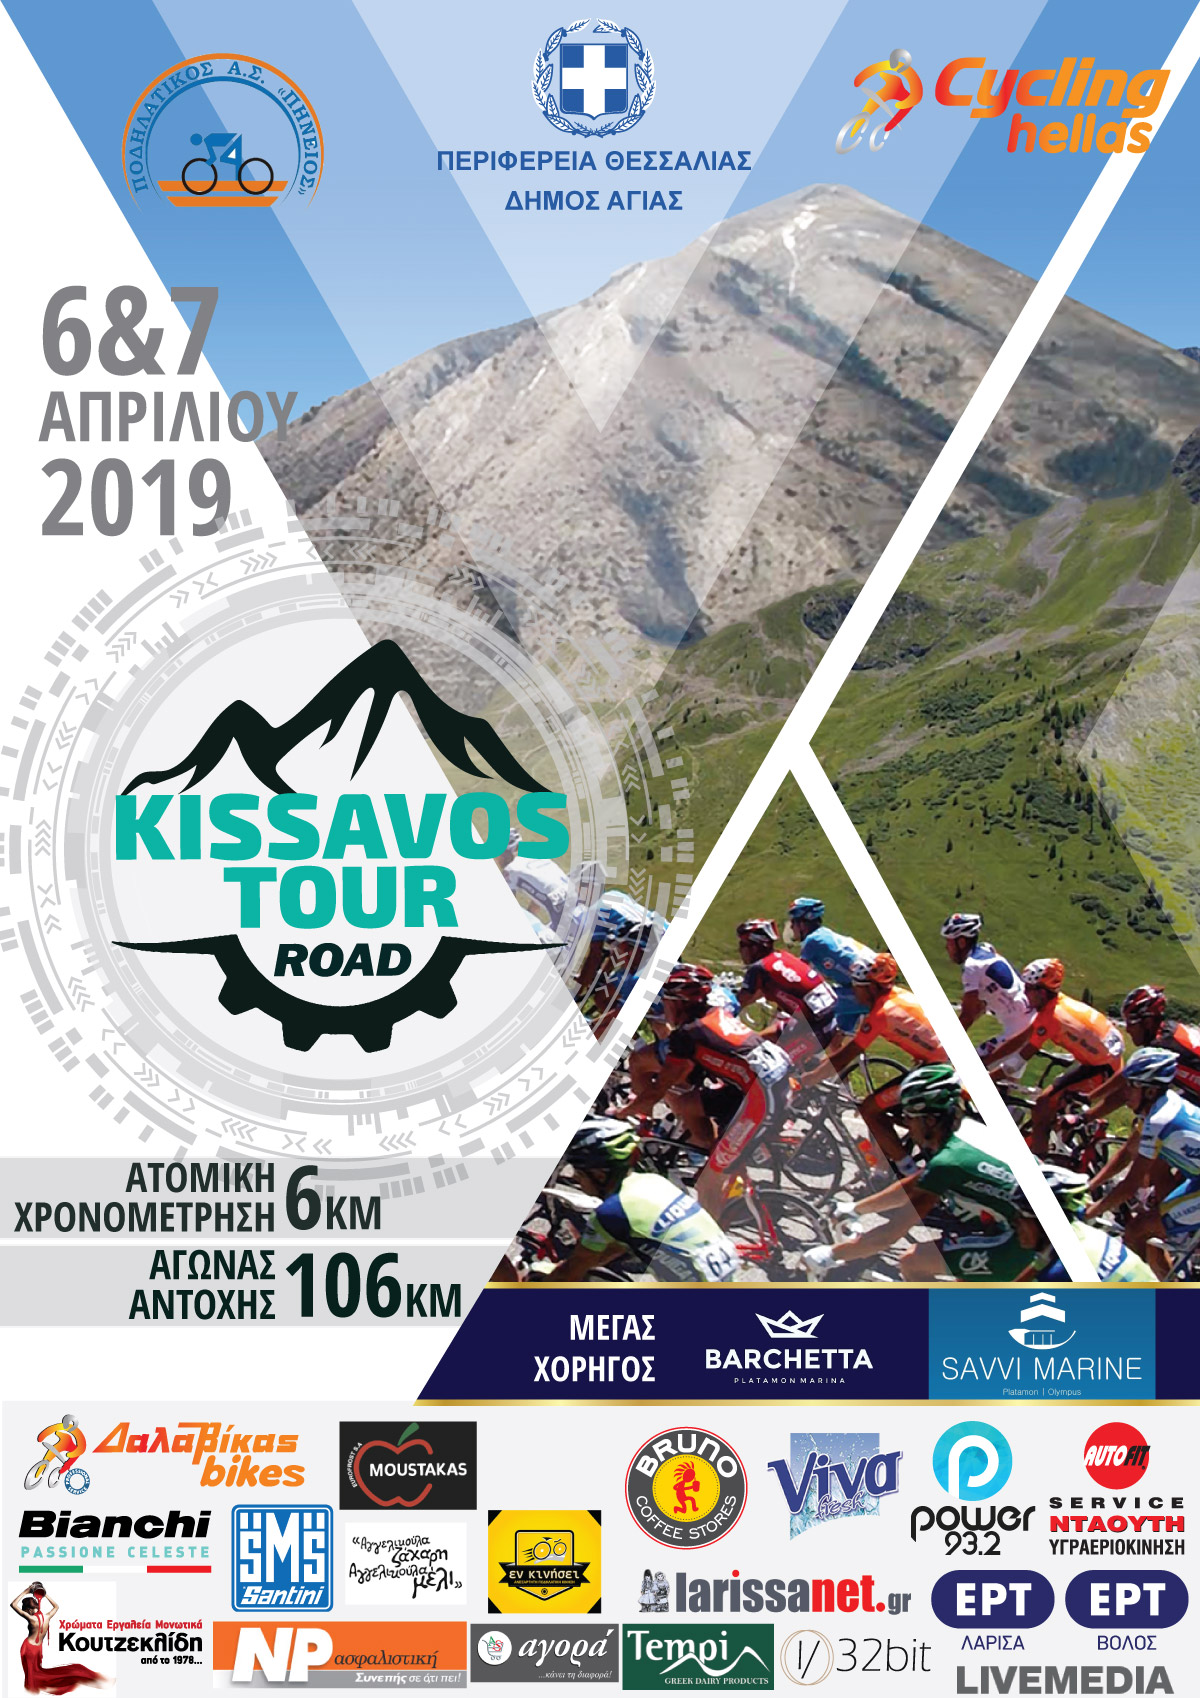 ΠΡΟΚΗΡΥΞΗ 6th KISSAVOS ROAD TOUR 2019